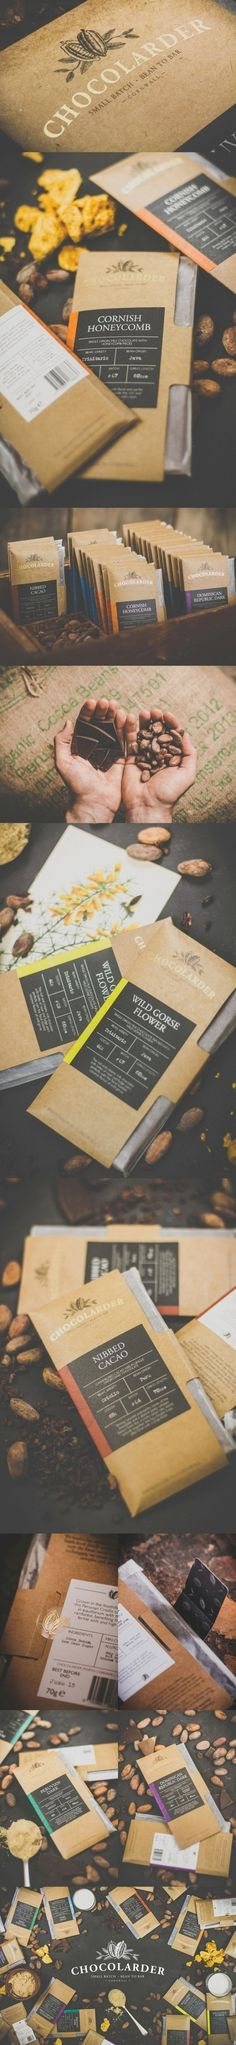 Exquisite chocolates, a pair of hands. (More design inspiration at… Chocolate Packaging, Coffee Packaging, Brand Packaging, Box Packaging, Packaging Design, Chocolate Bark, How To Make Chocolate, Design Campaign, Creative Advertising